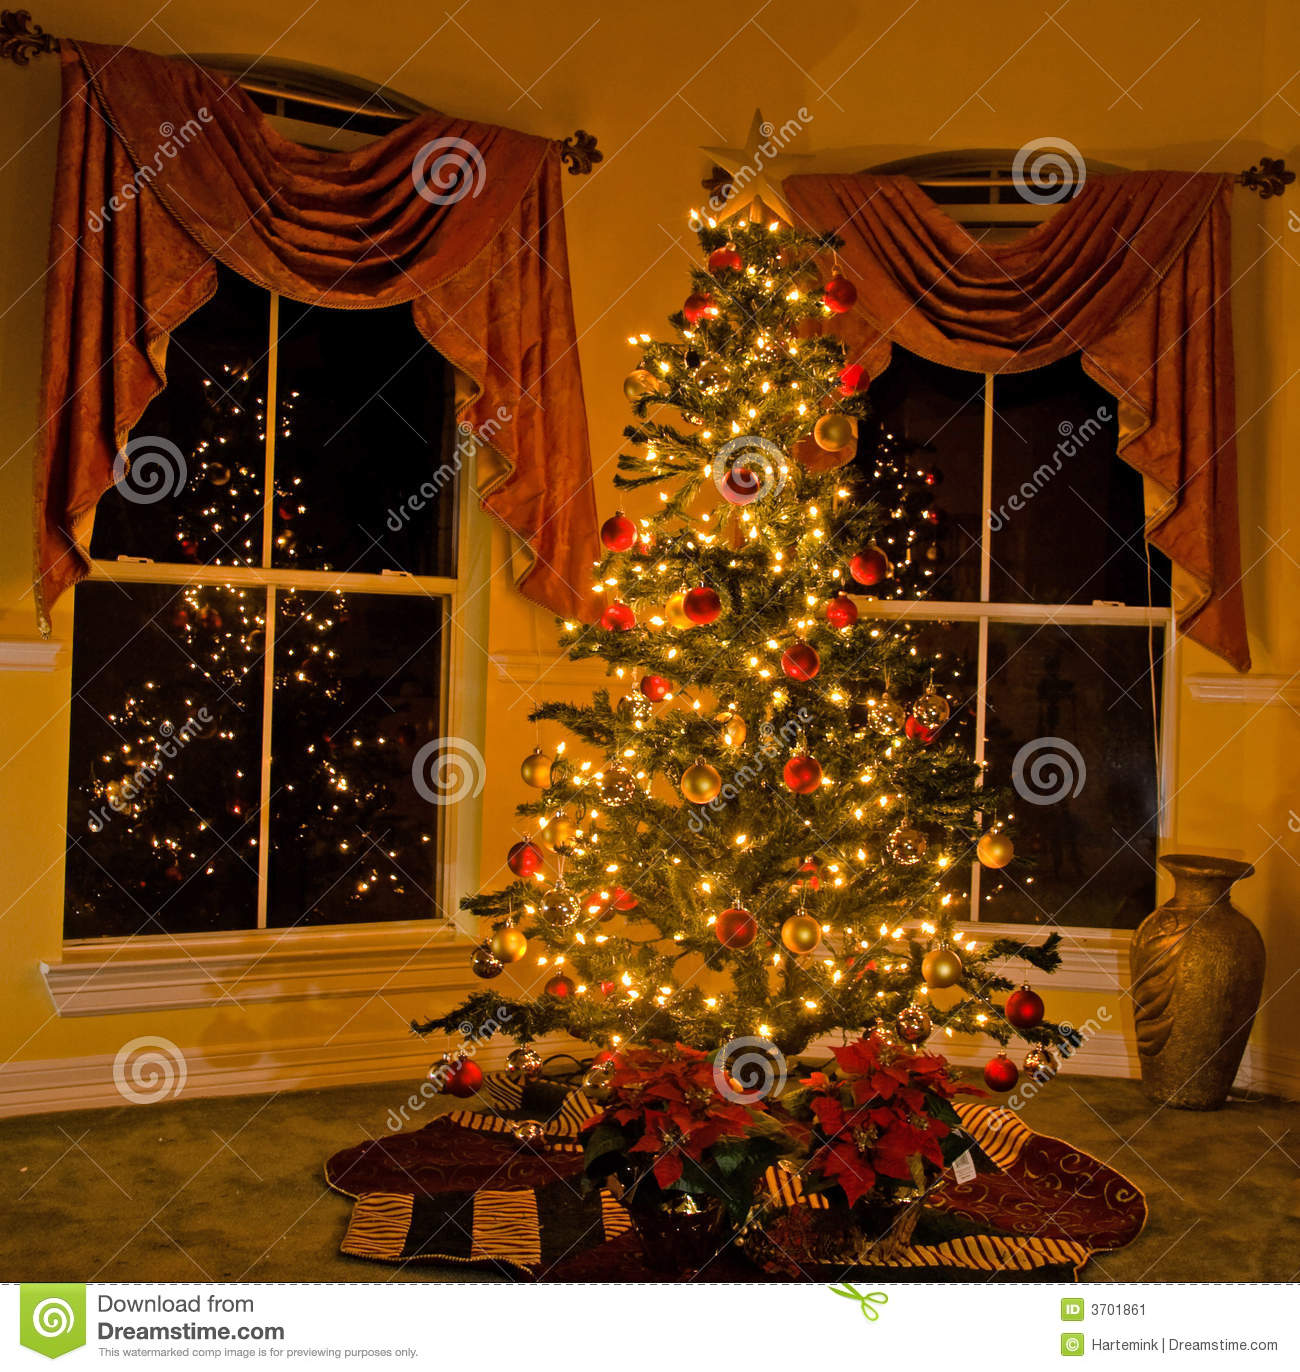 Lighted Christmas Tree In Cozy Home Stock Image  Image: 3701861